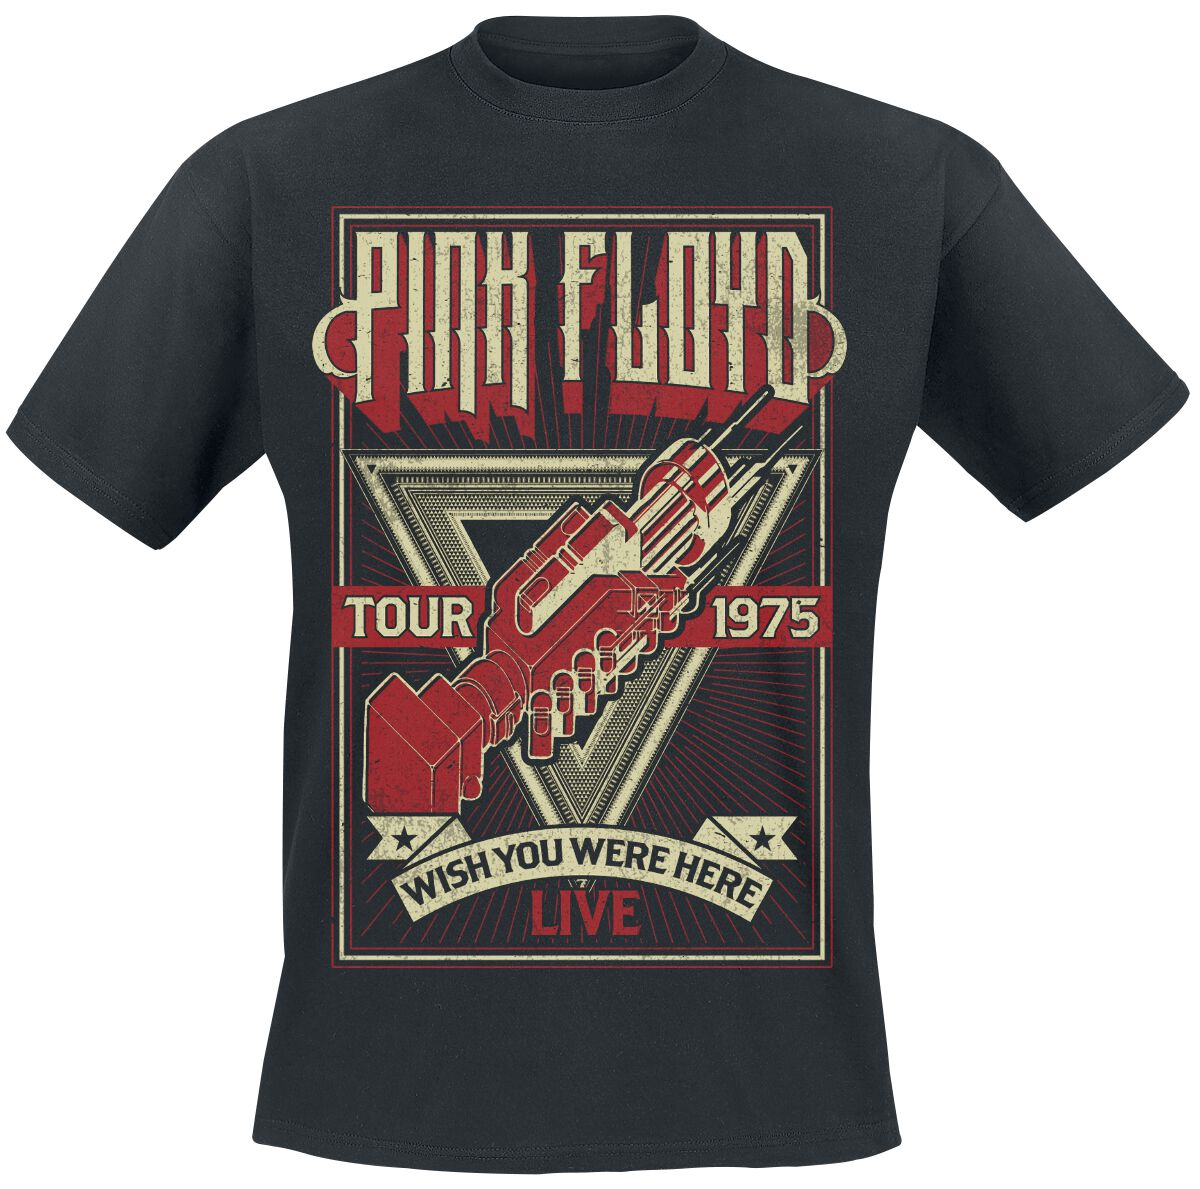 Image of   Pink Floyd Wish You Were Here Tour 1975 T-Shirt sort